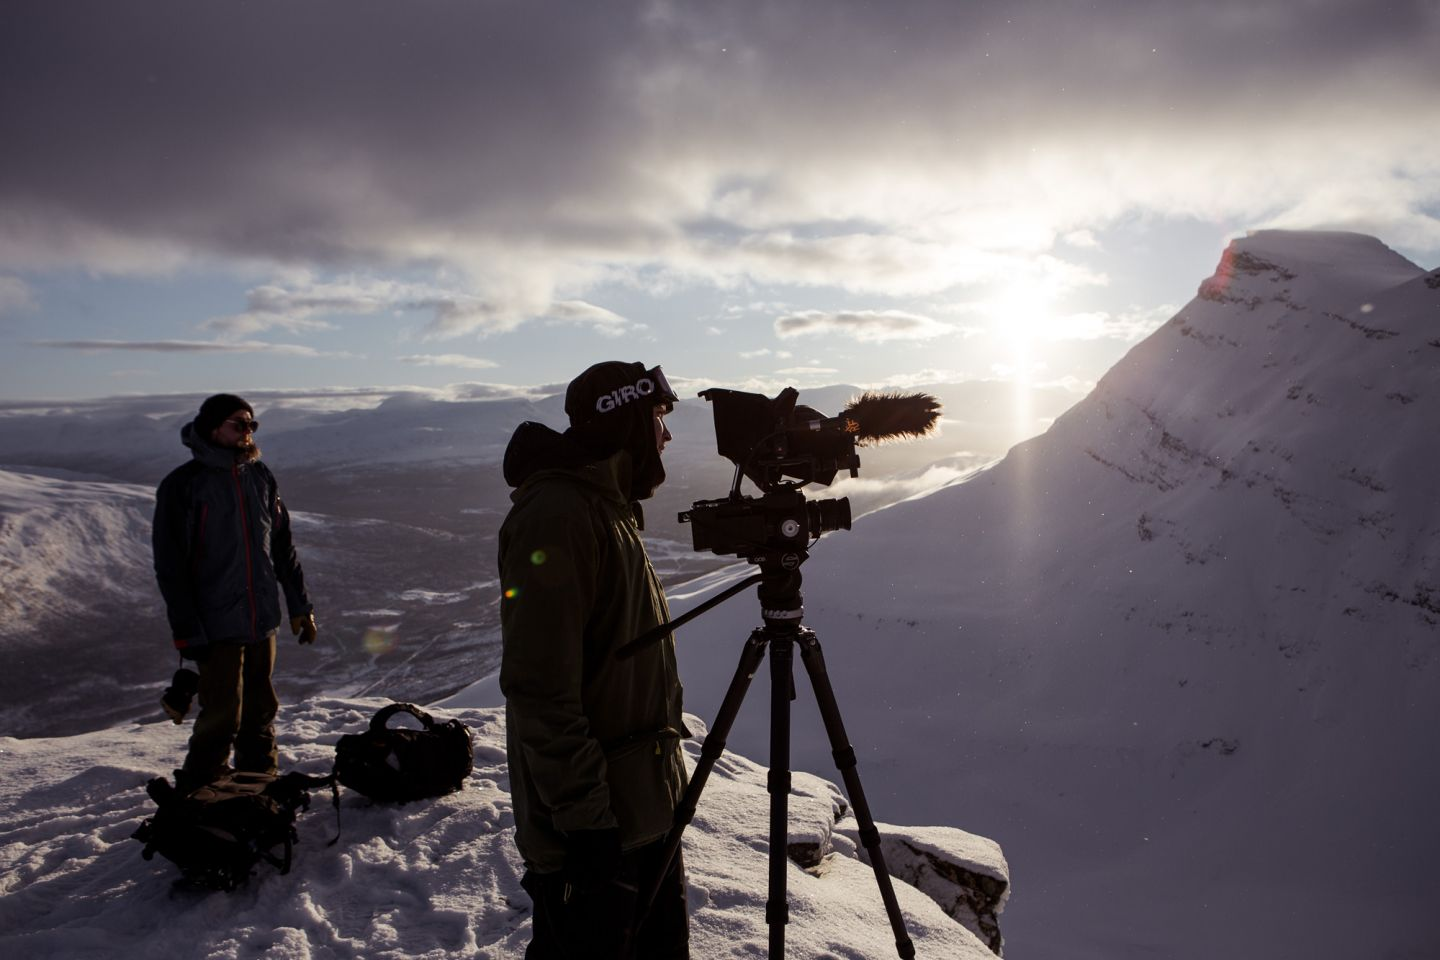 Kota Collective, filming on location in Finnish Lapland